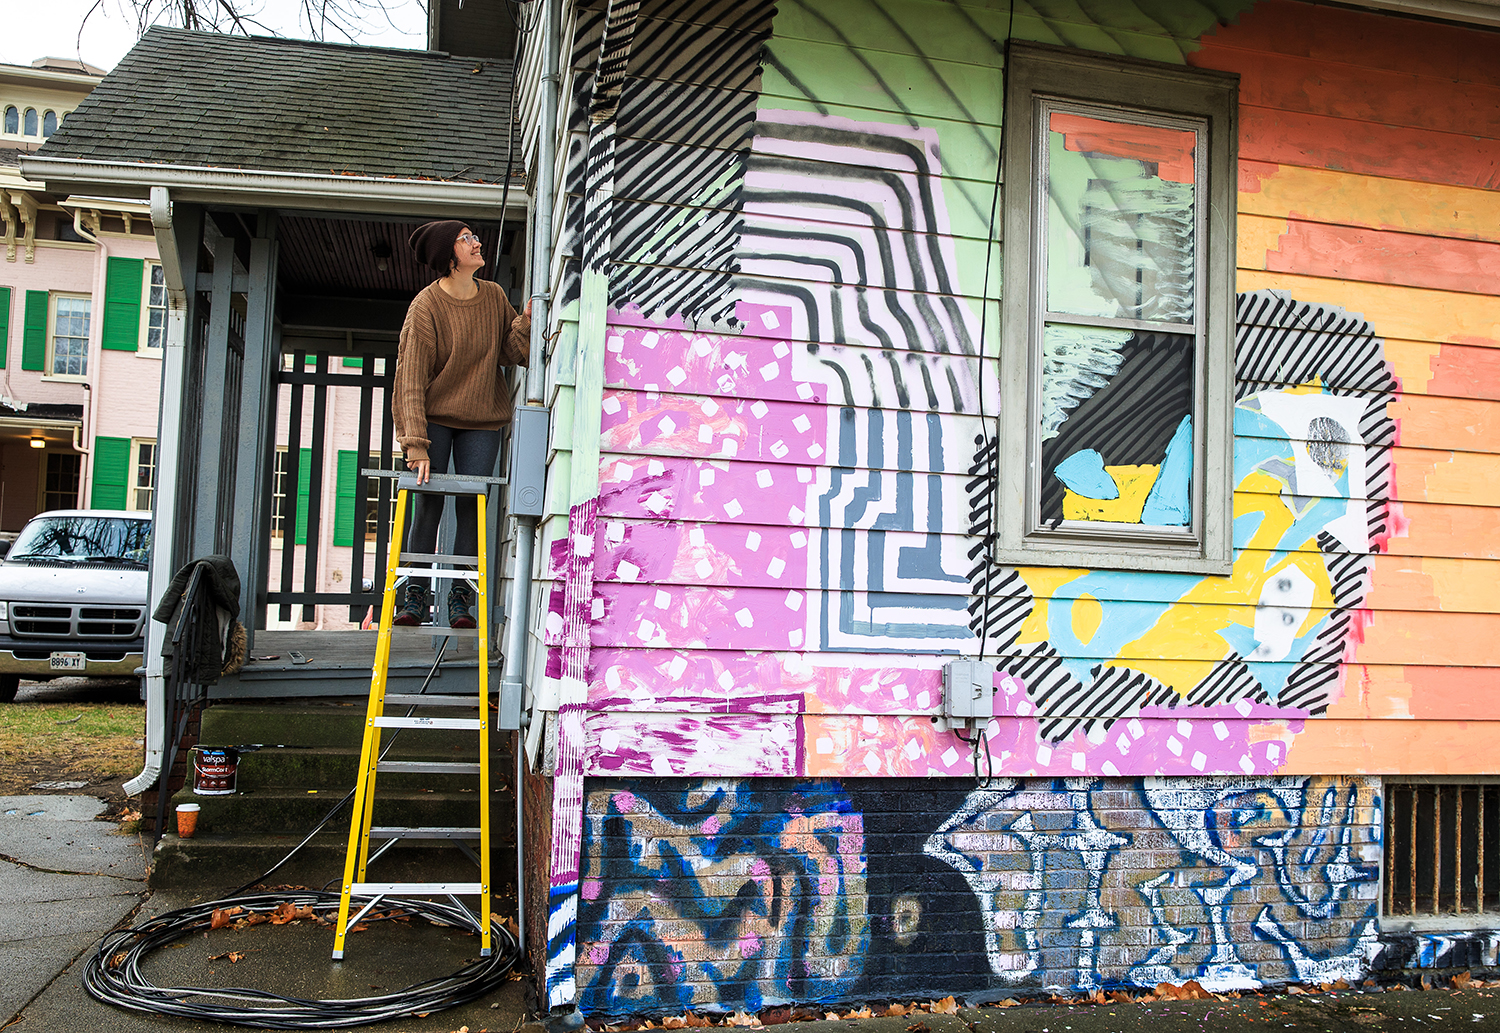 """Grace Katalinich, center, a junior member of the DEMO Project, scales a ladder to draw in the installation of a piece by Tom Burtonwood that includes 3D scanning targets on the rear facade of the The DEMO Project facility, a space donated for use by the Springfield Art Association and directed by artists affiliated with the University of Illinois Springfield, at 732 N. 4th St., Thursday, Jan. 11, 2018, in Springfield, Ill. Burtonwood did 3D scans of the house and used them to create a 3D print for a piece called """"Offset Registration"""" that was an exhibit in the house. The farewell party for the house will be on Saturday Jan. 13th from 2-5 p.m. [Justin L. Fowler/The State Journal-Register]"""